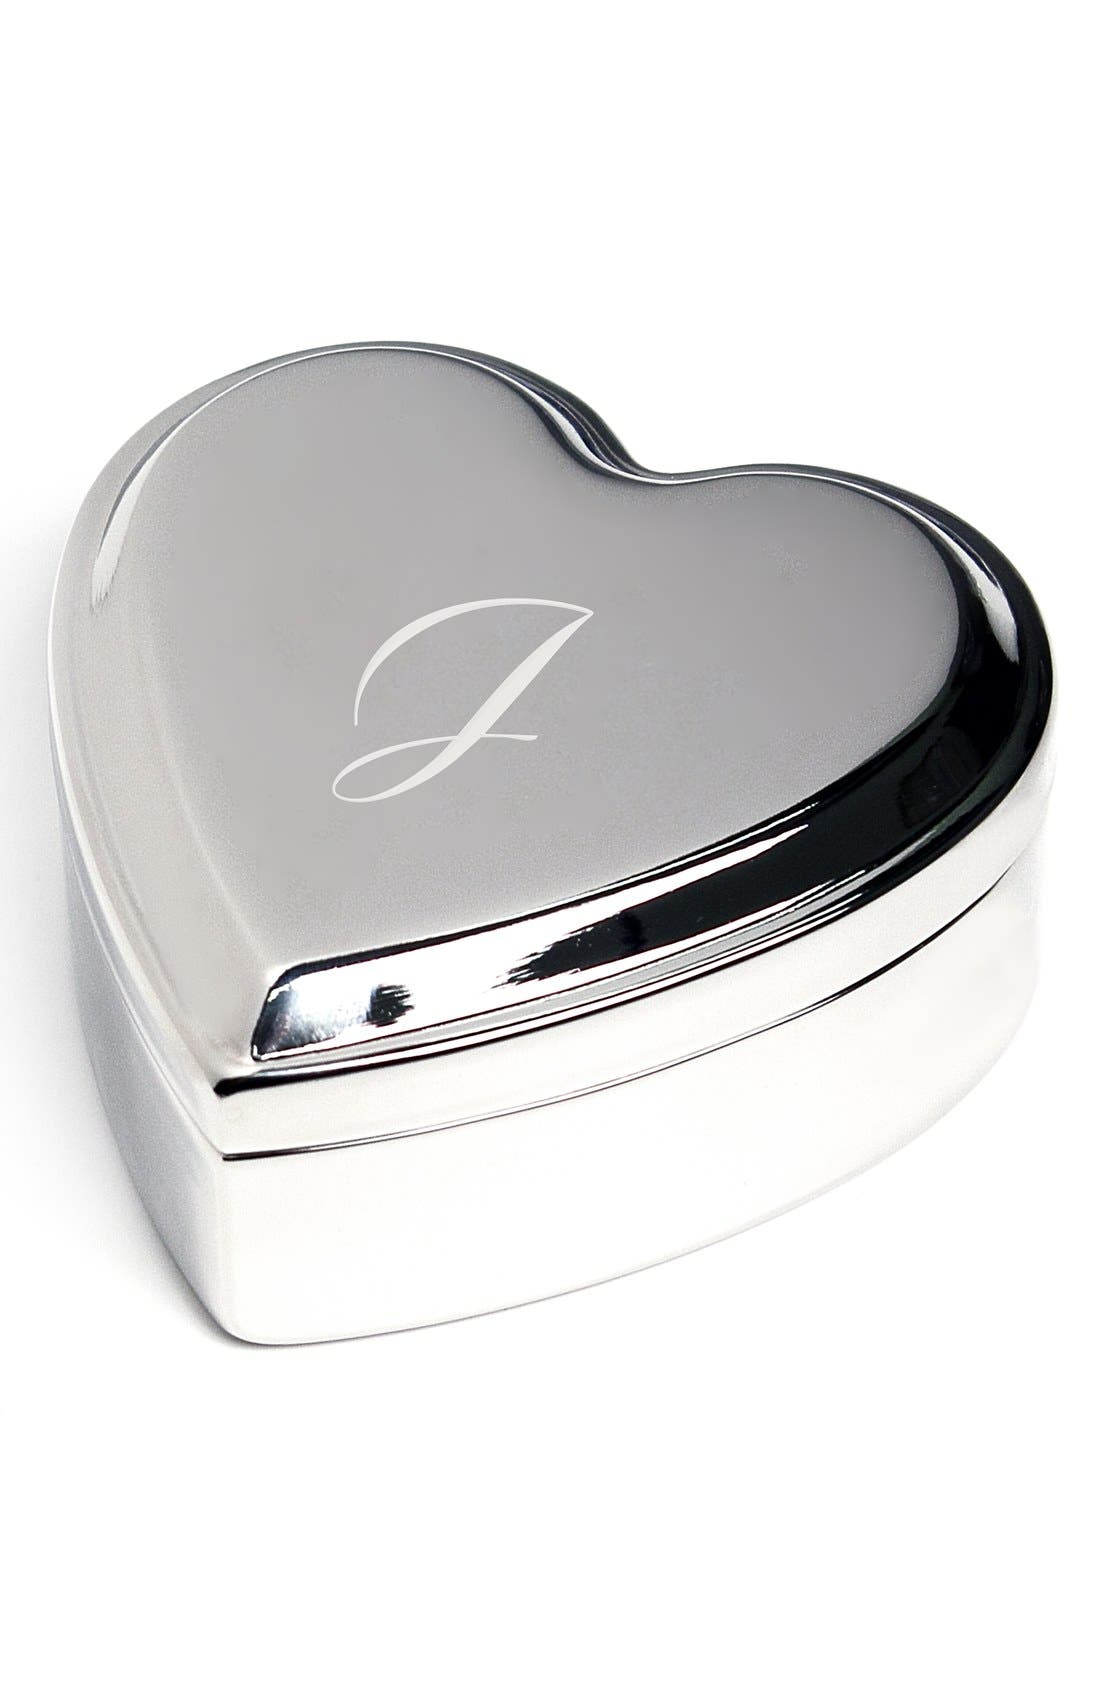 Cathy's Concepts Monogram Heart Keepsake Box